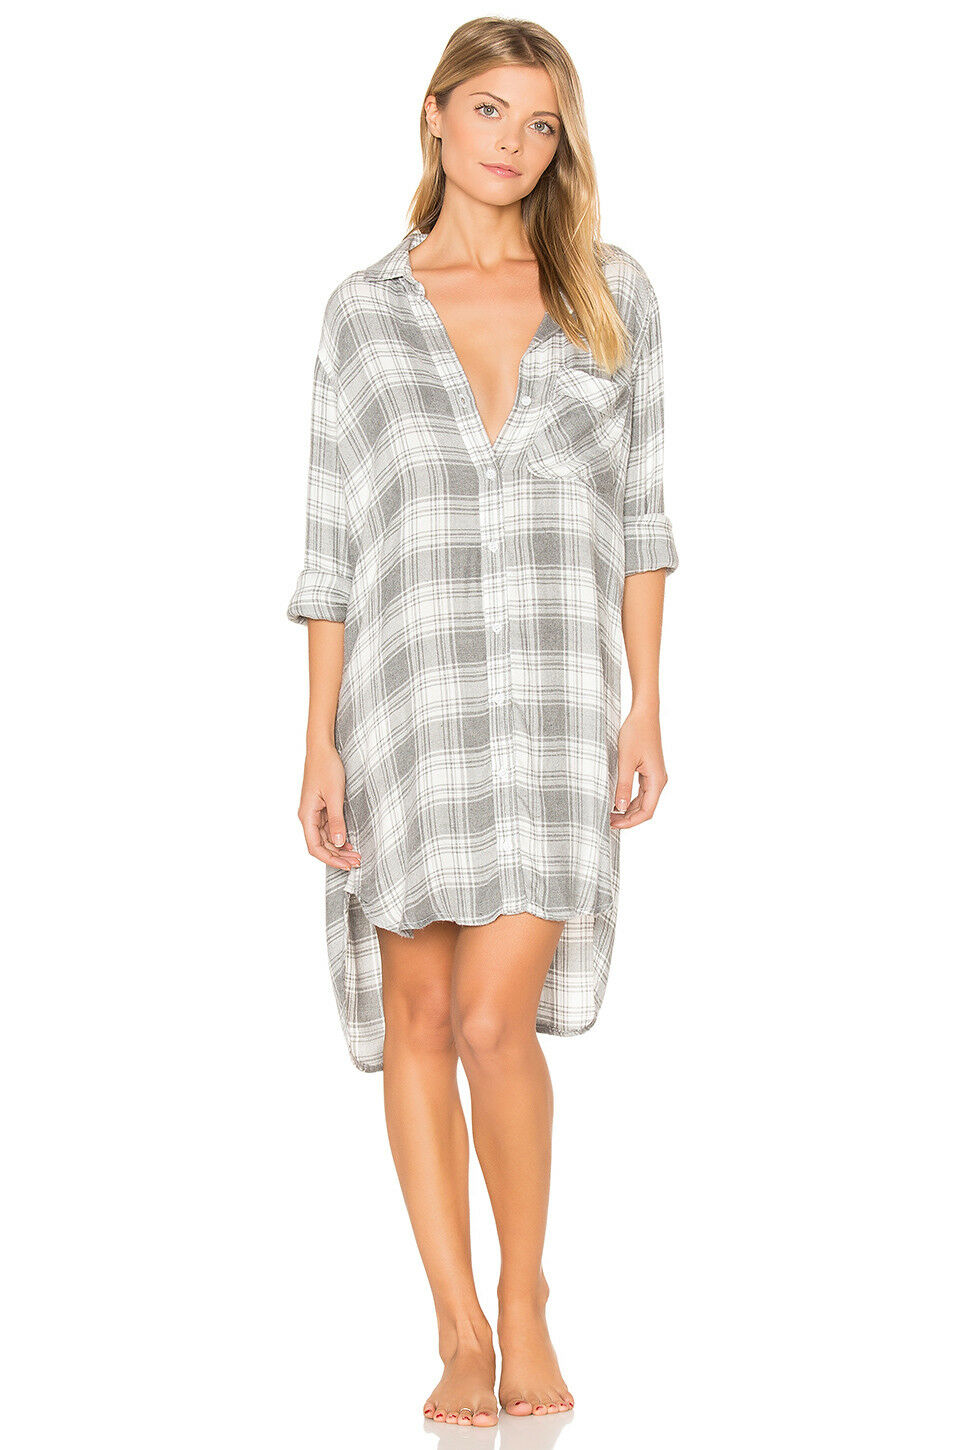 NEW CLOTH & STONE SzM FLANNEL HIPSTER LONG SLEEVE SHIRT DRESS PLAID HEATHER grau